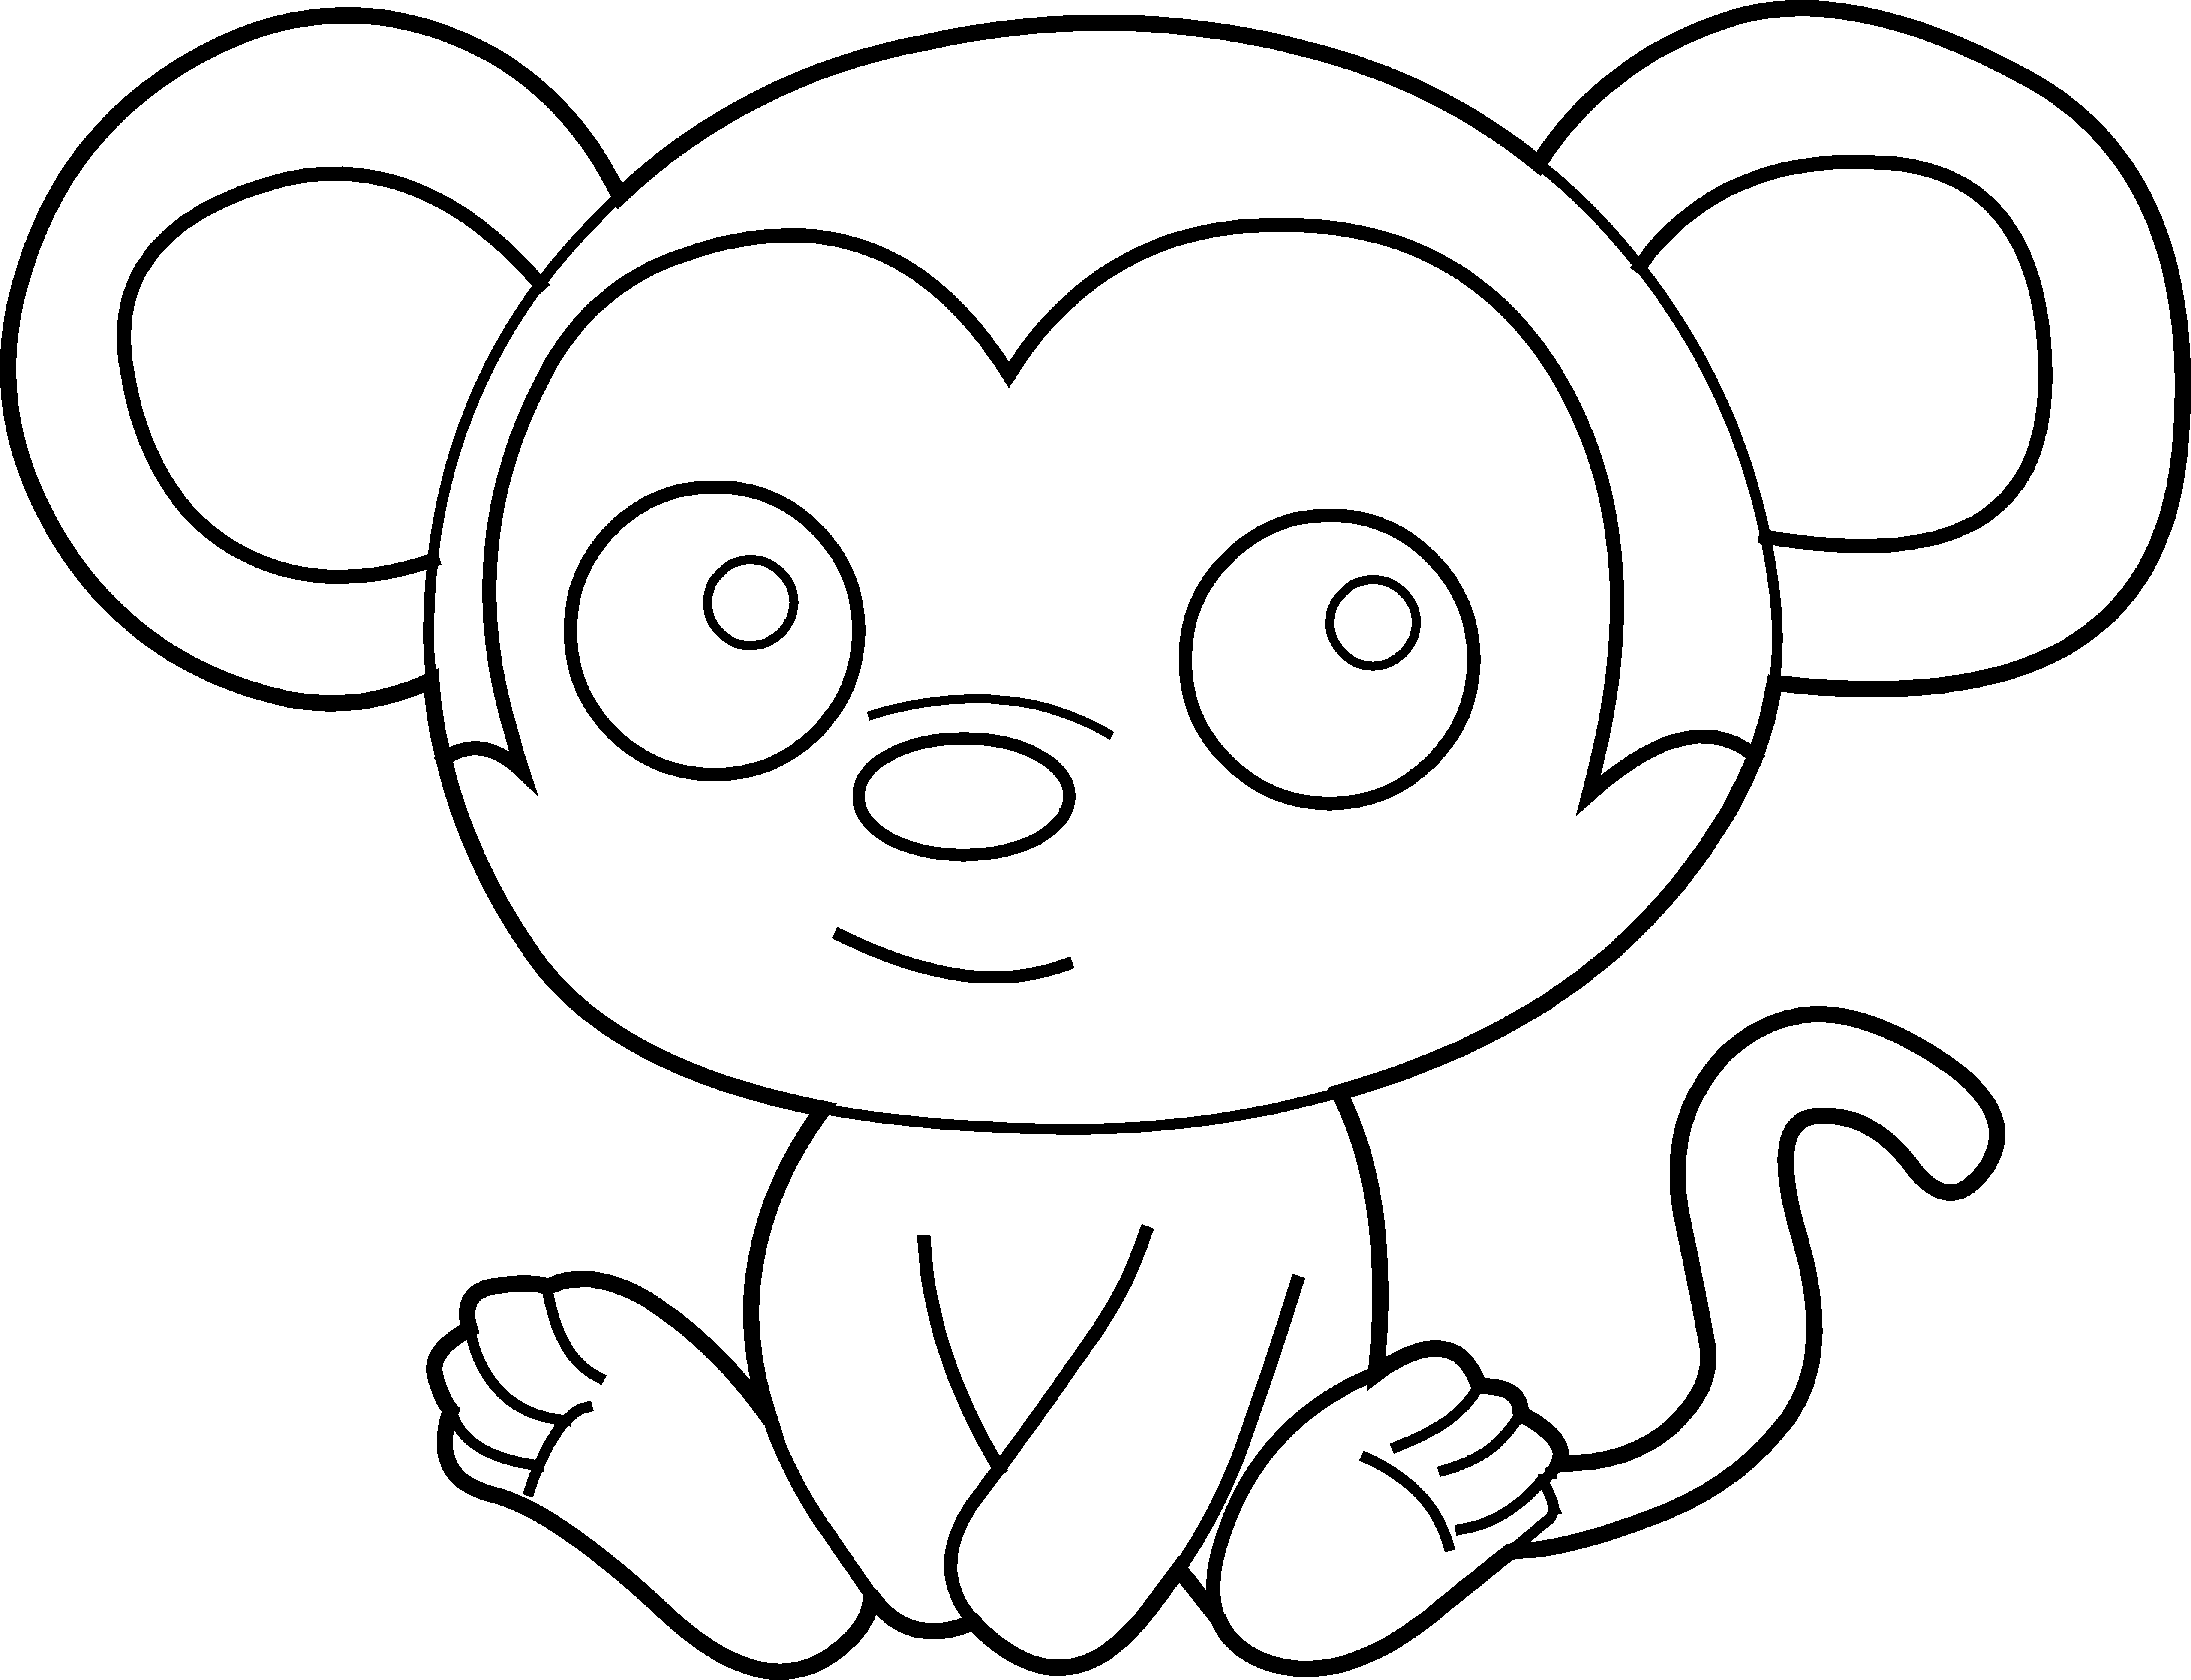 Free Baby Monkey Clip Art - Cliparts.co A Coloring Page